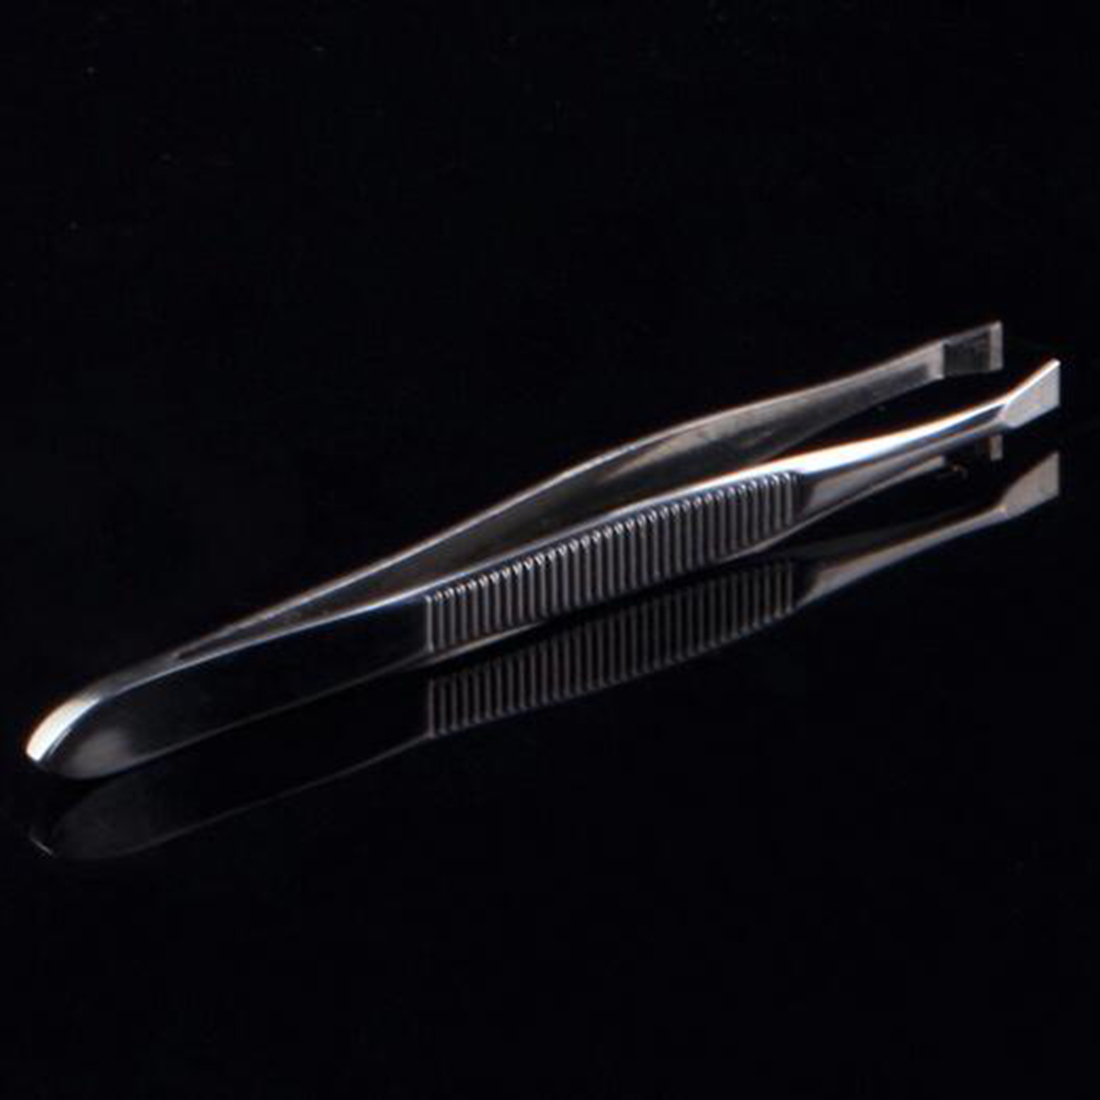 1Pcs Women Eyebrow Face Nose Hair Clip Tweezer Remover Stainless Steel Tweezers Shape Tool Eyebrow Tweezers Hot Sale in Eyebrow Tweezers from Beauty Health